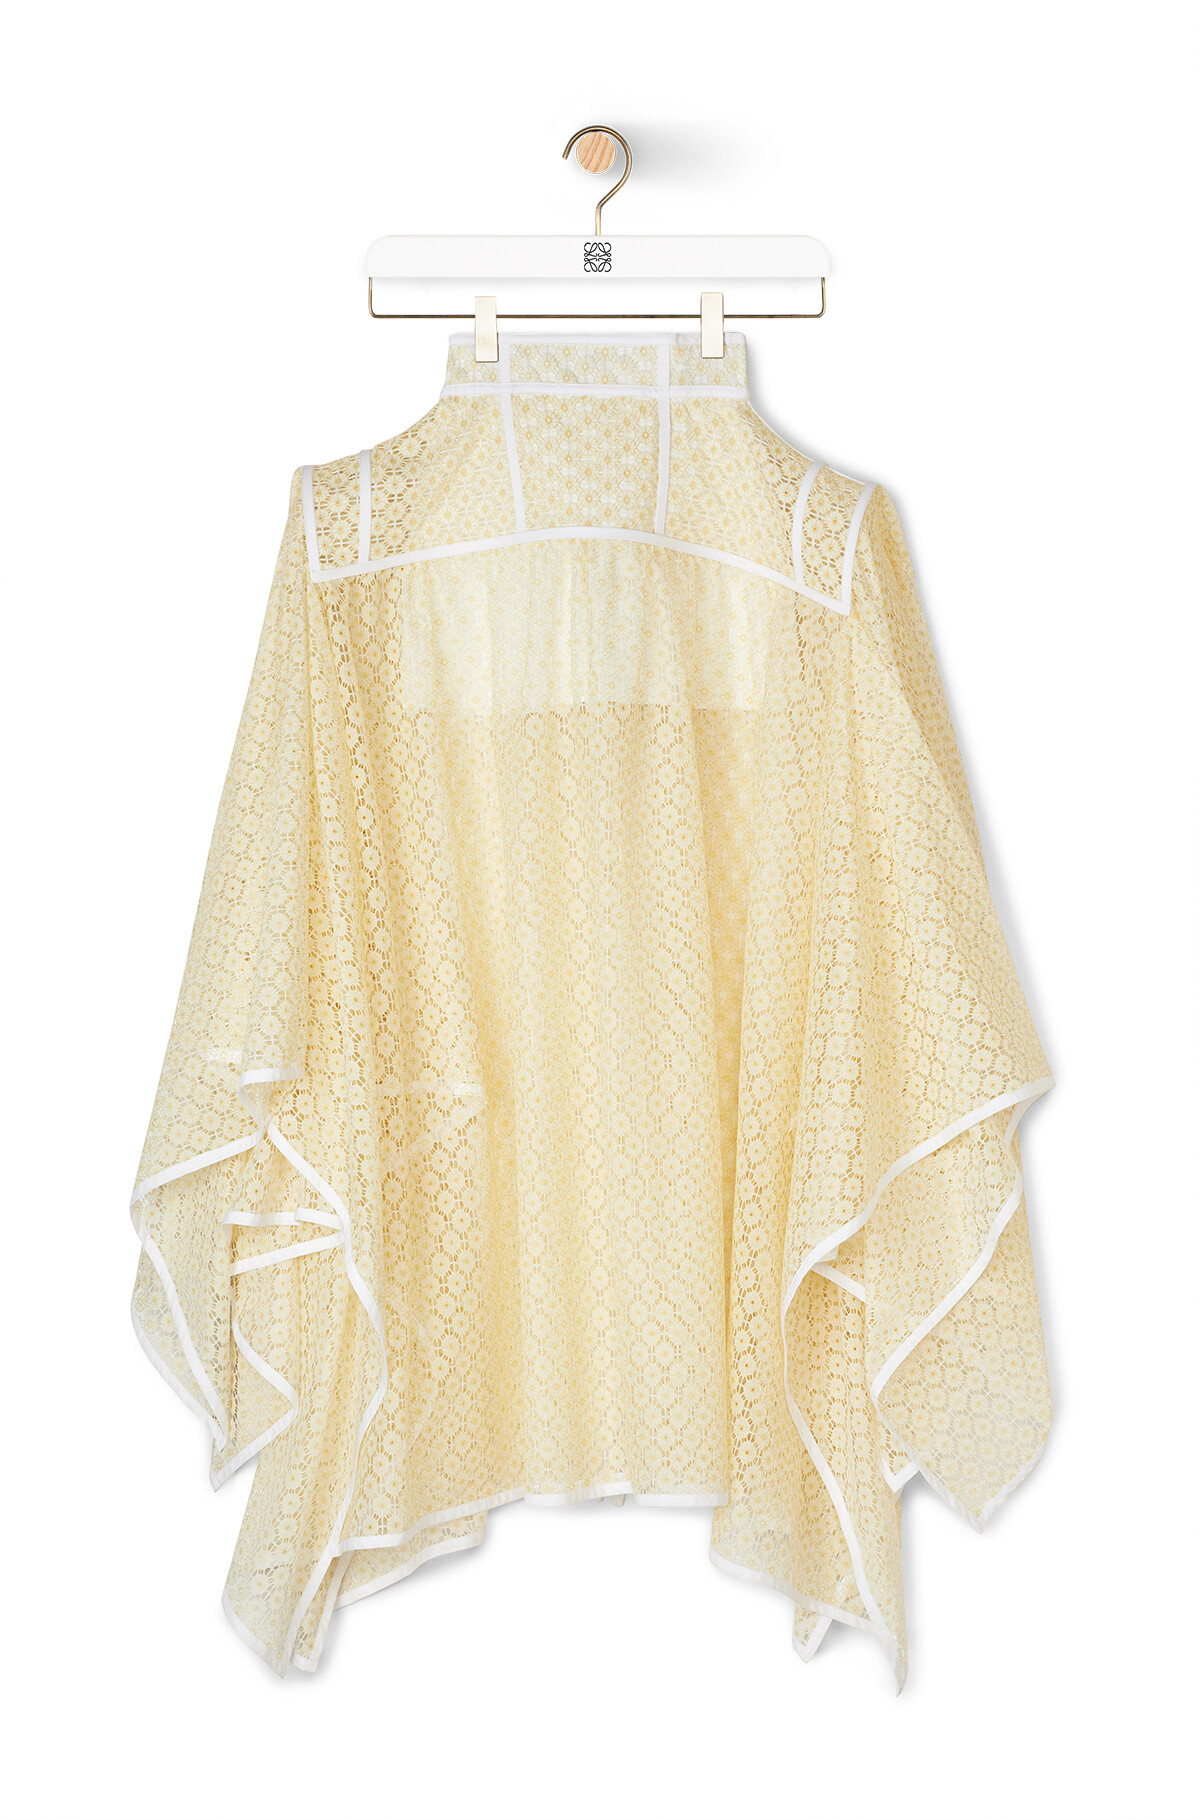 LOEWE Basque Lace Skirt Yellow front